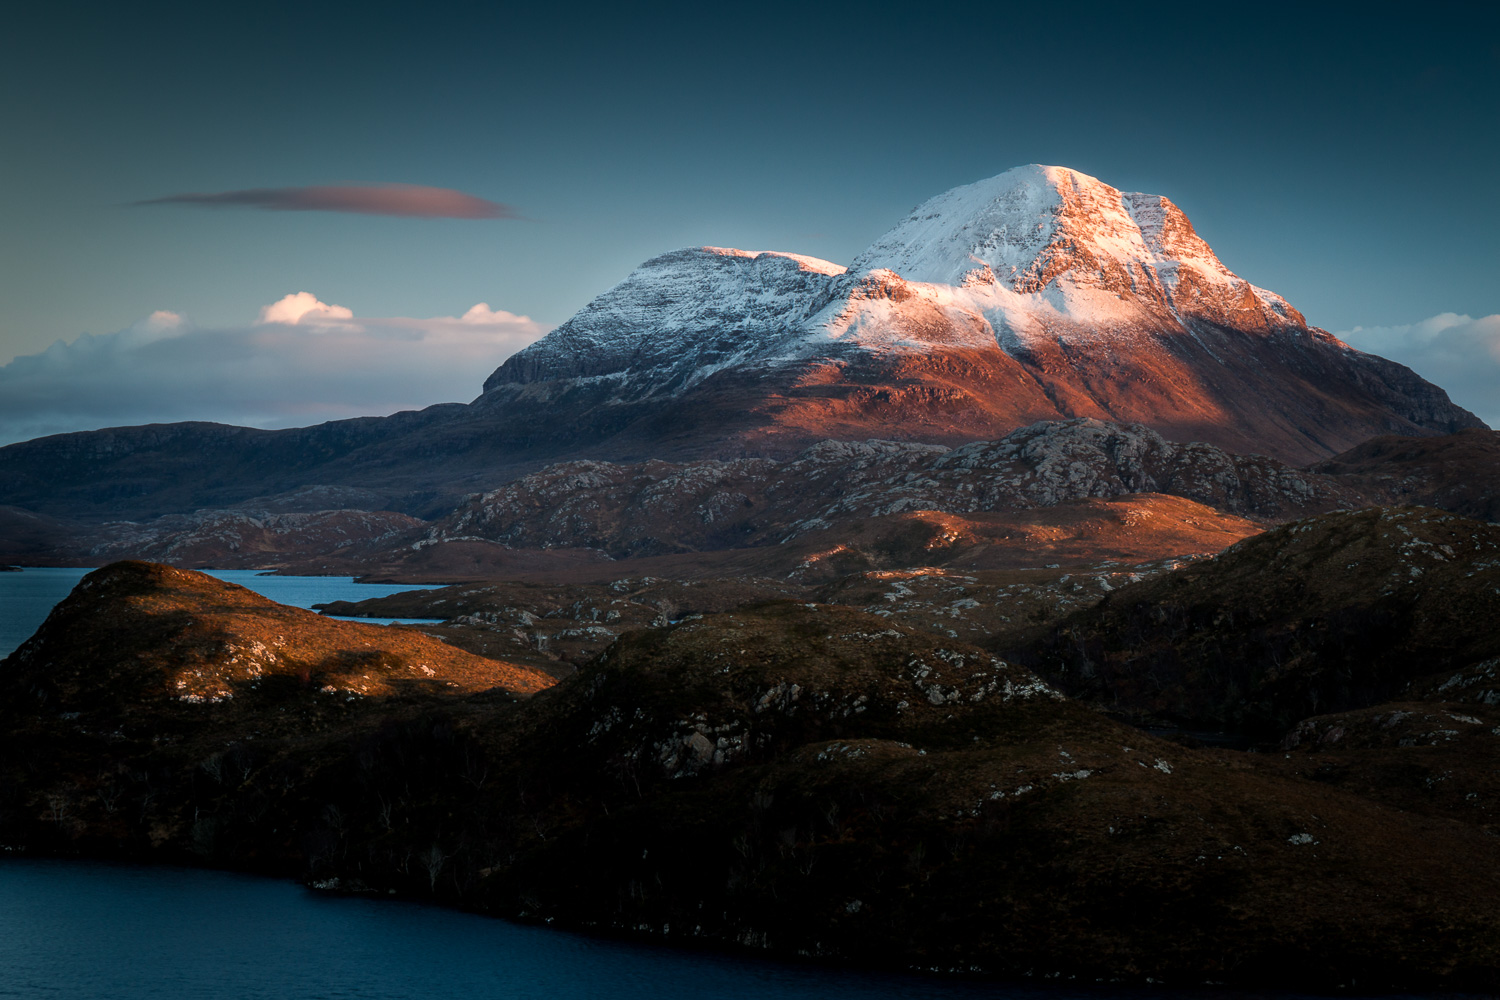 The late sun on the slopes of Cùl Beag.